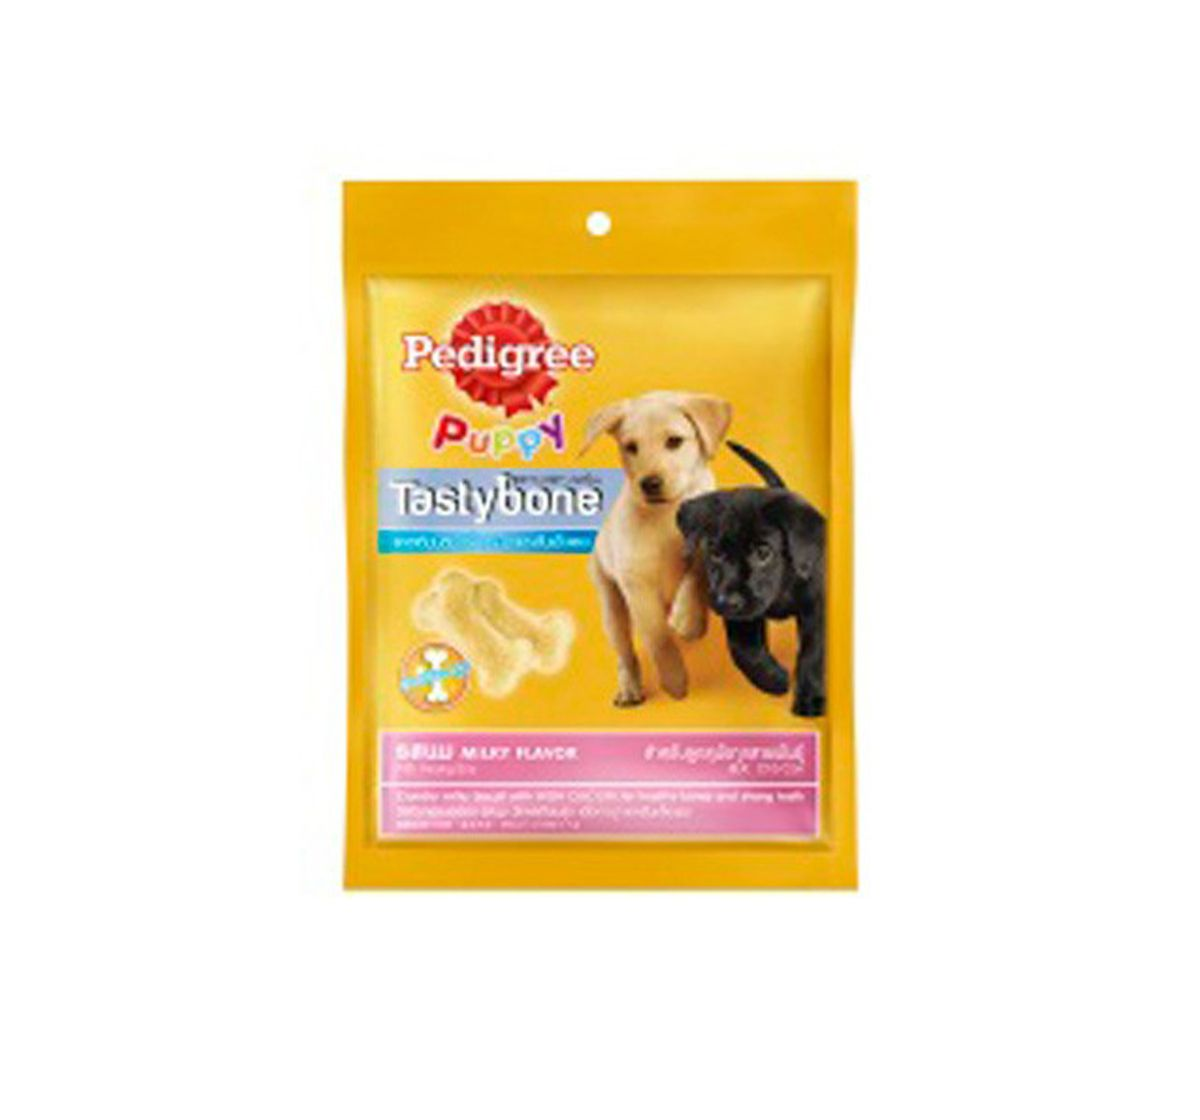 Pedigree Puppy Tasty Bone Milky Biscuit 150 Gm Pet Supply